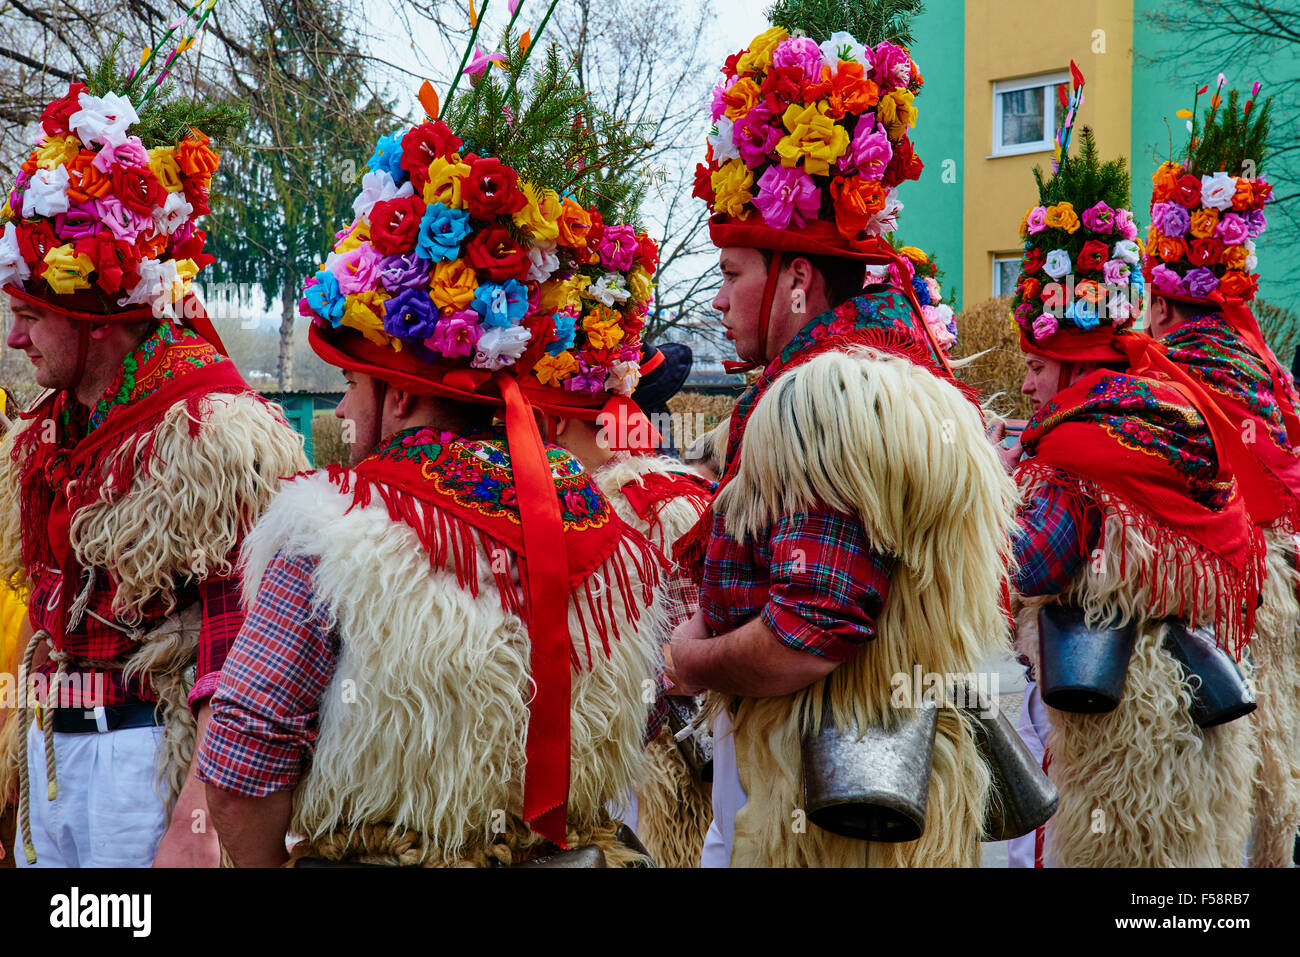 Slovenia, Lower Styria Region, Ptuj, town on the Drava River banks, carnival day Stock Photo